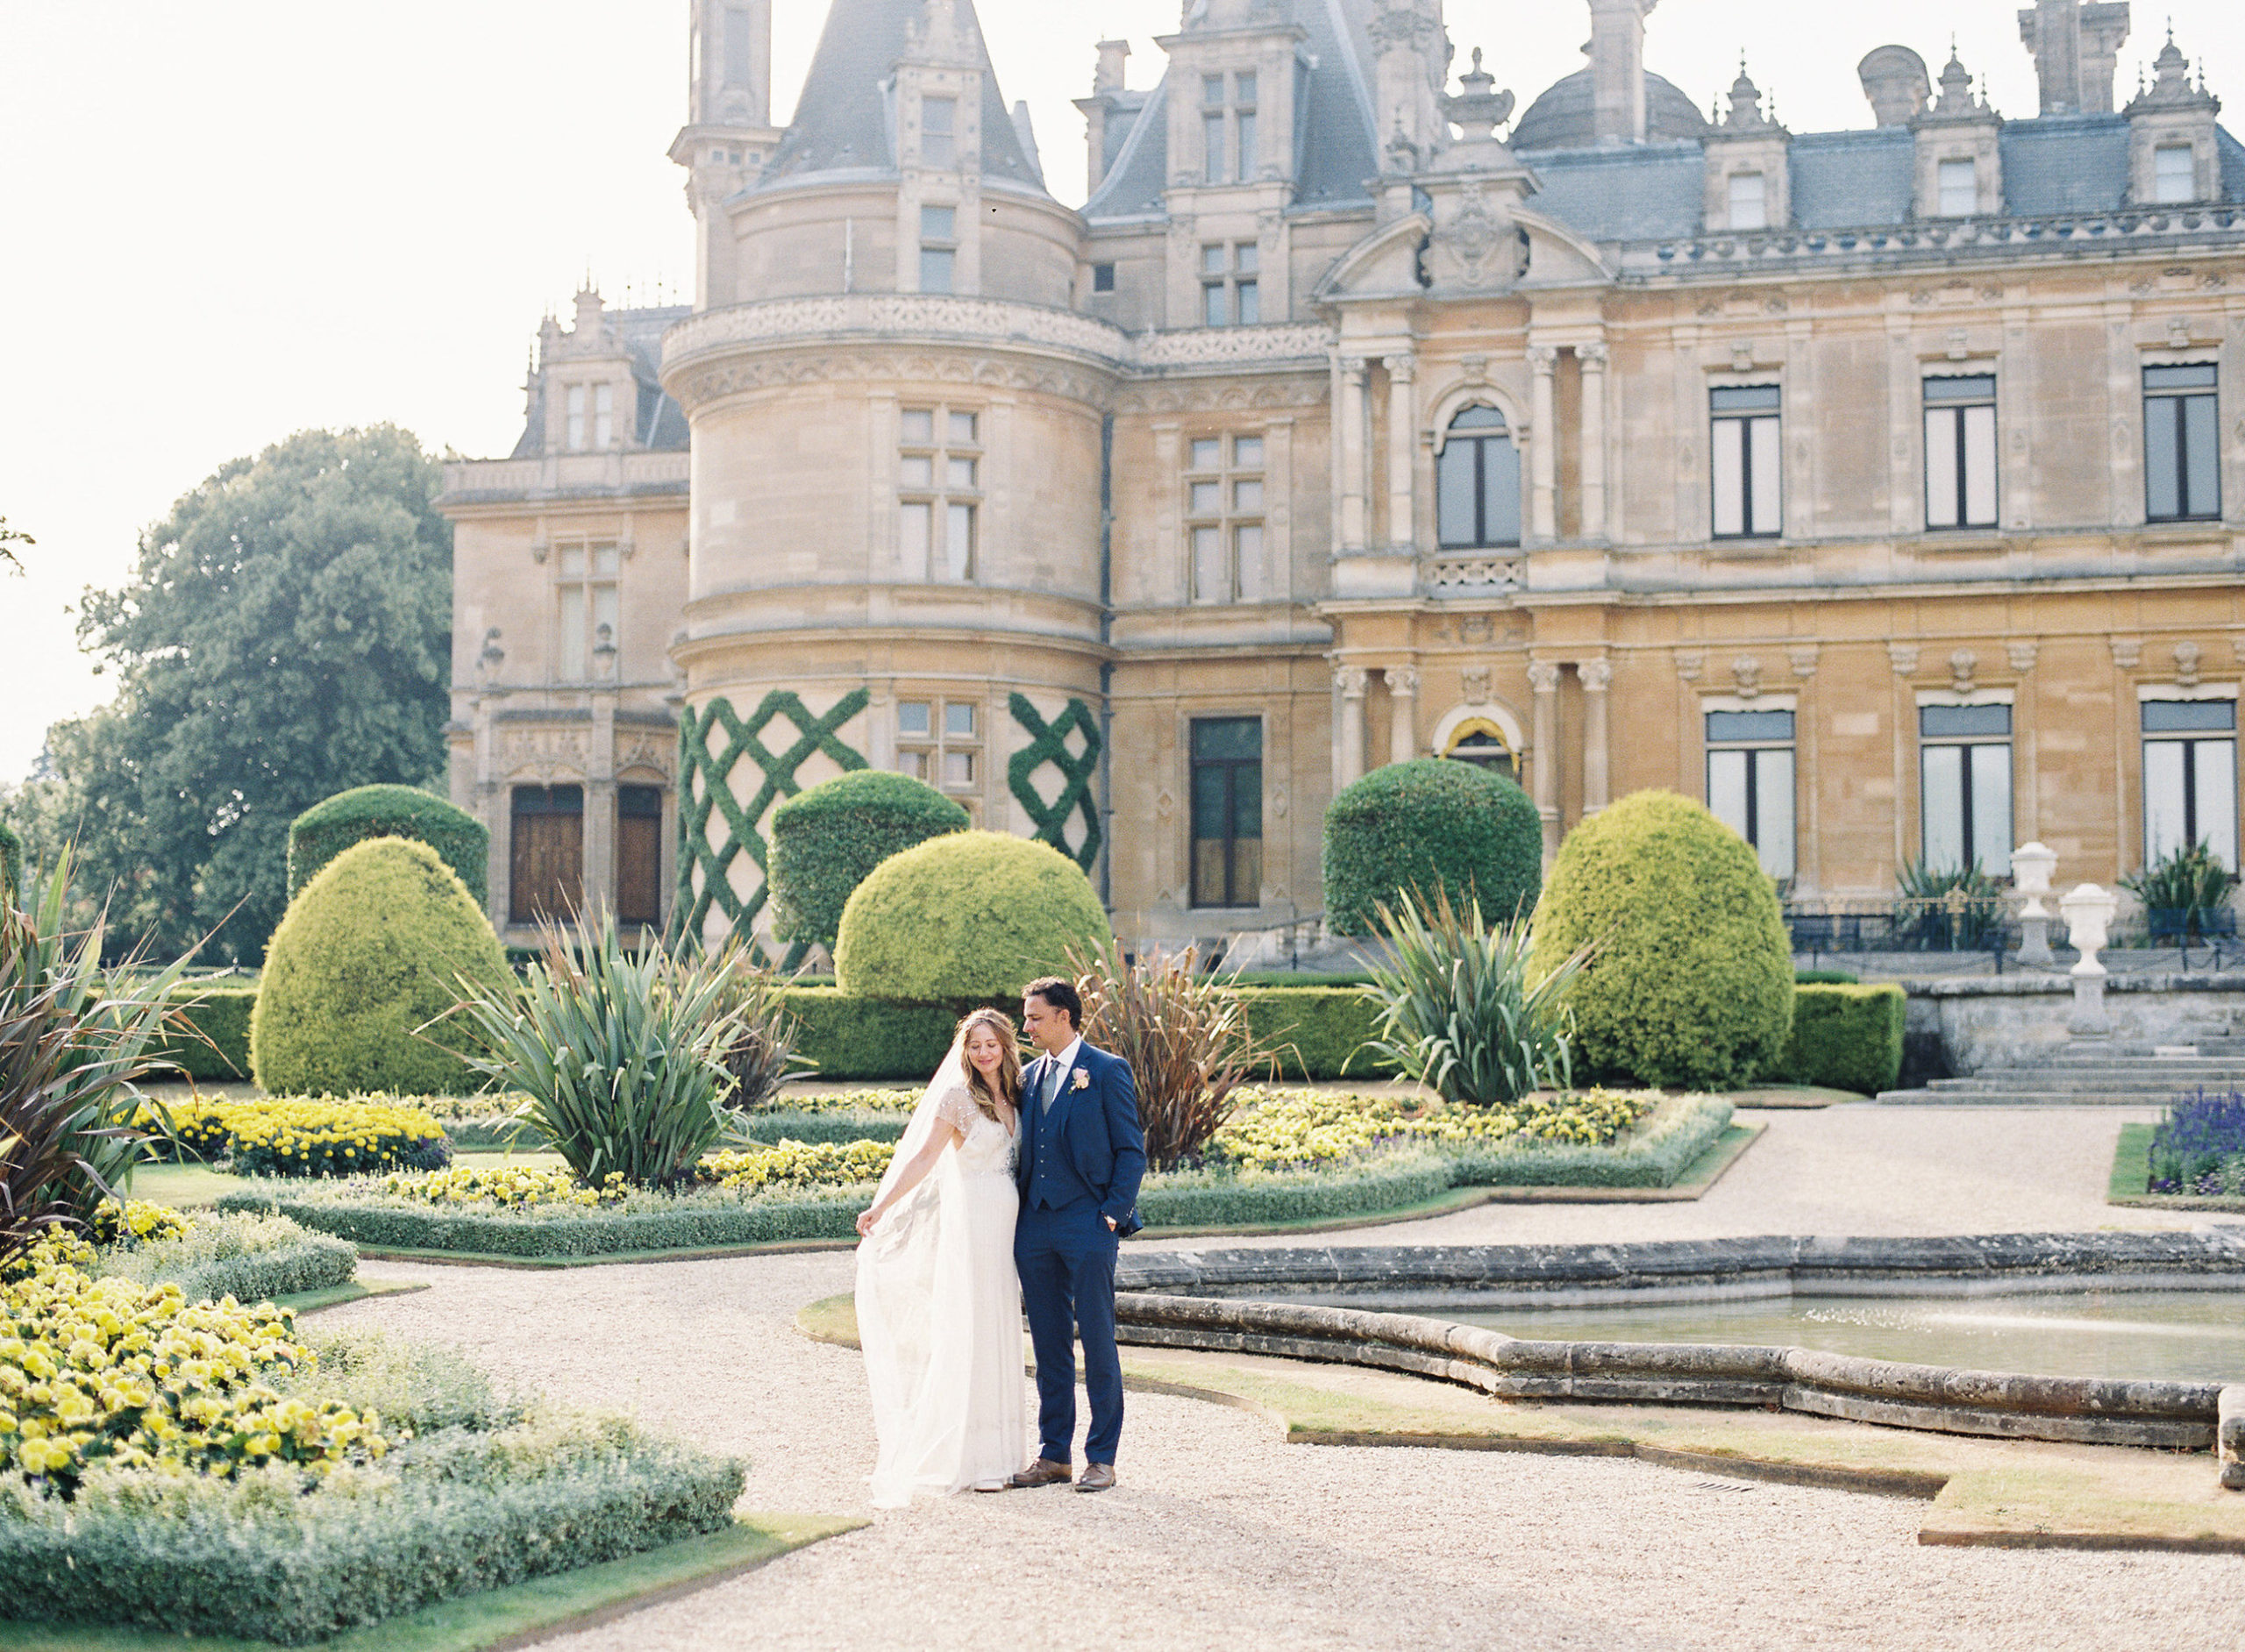 Wedding photography on film at Waddesdon manor